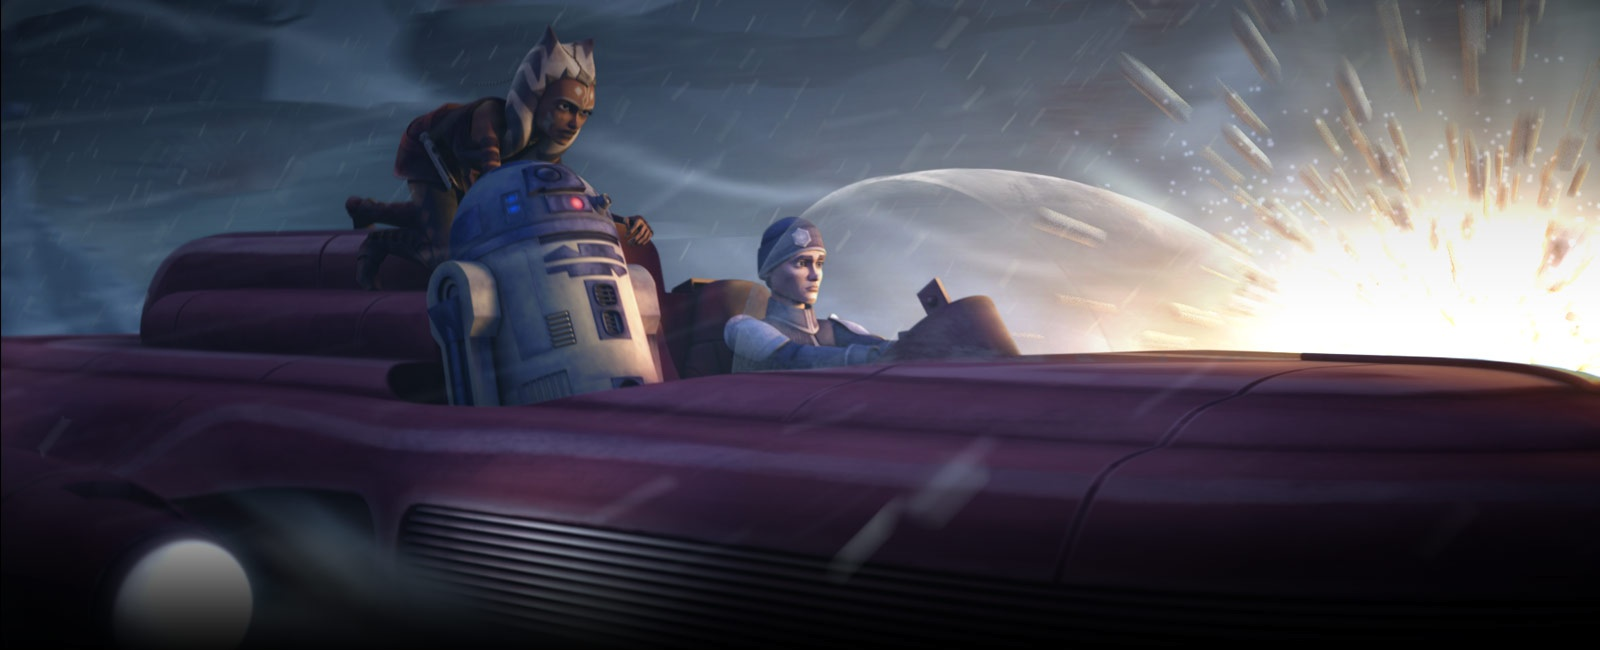 Star Wars: The Clone Wars - December 6th